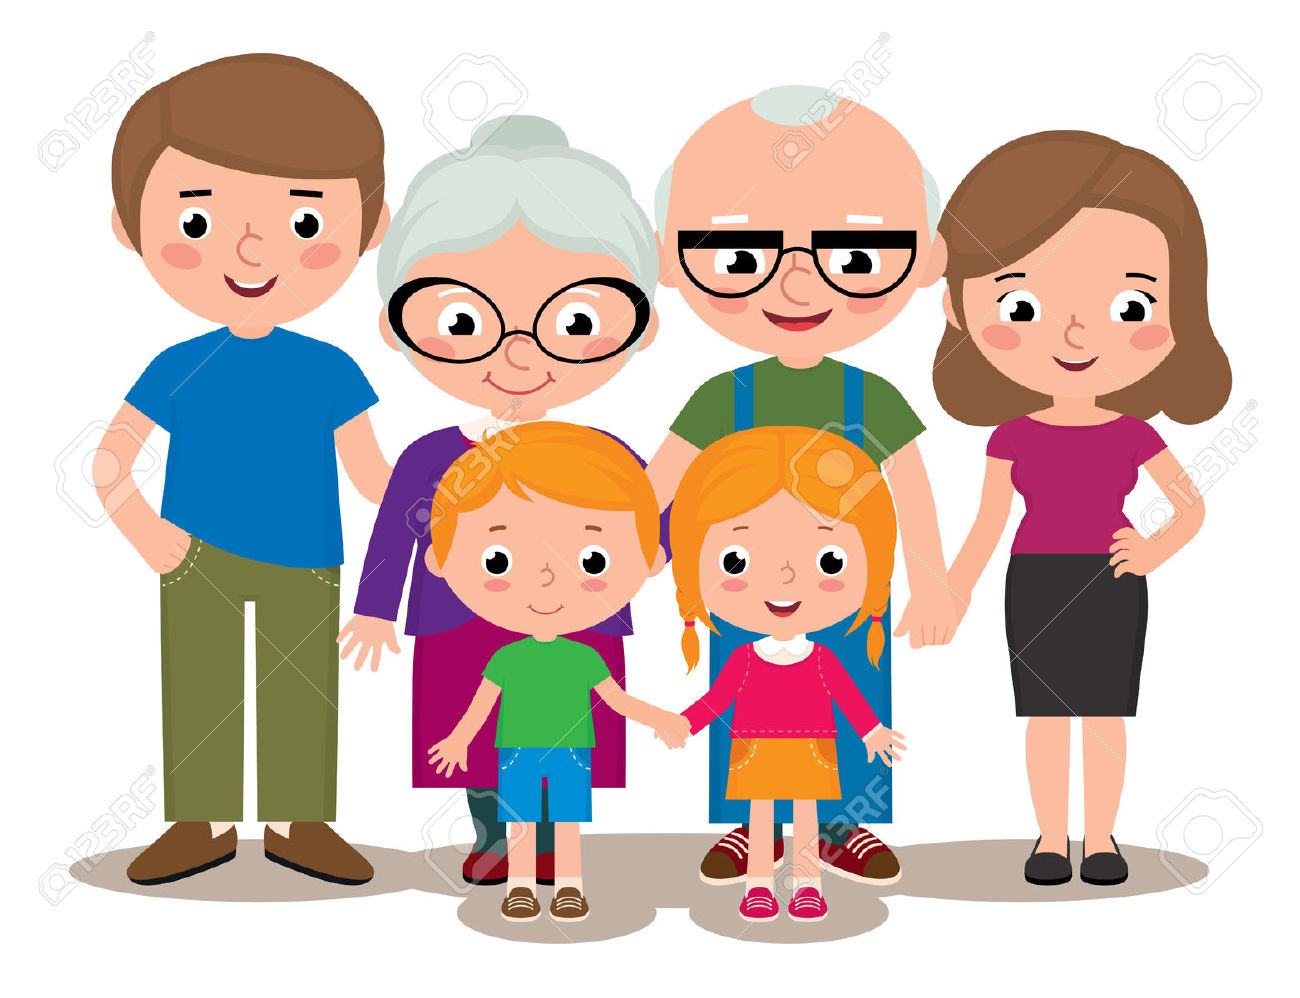 Stock Vector Cartoon Illustration Of A Family Group Portrait.